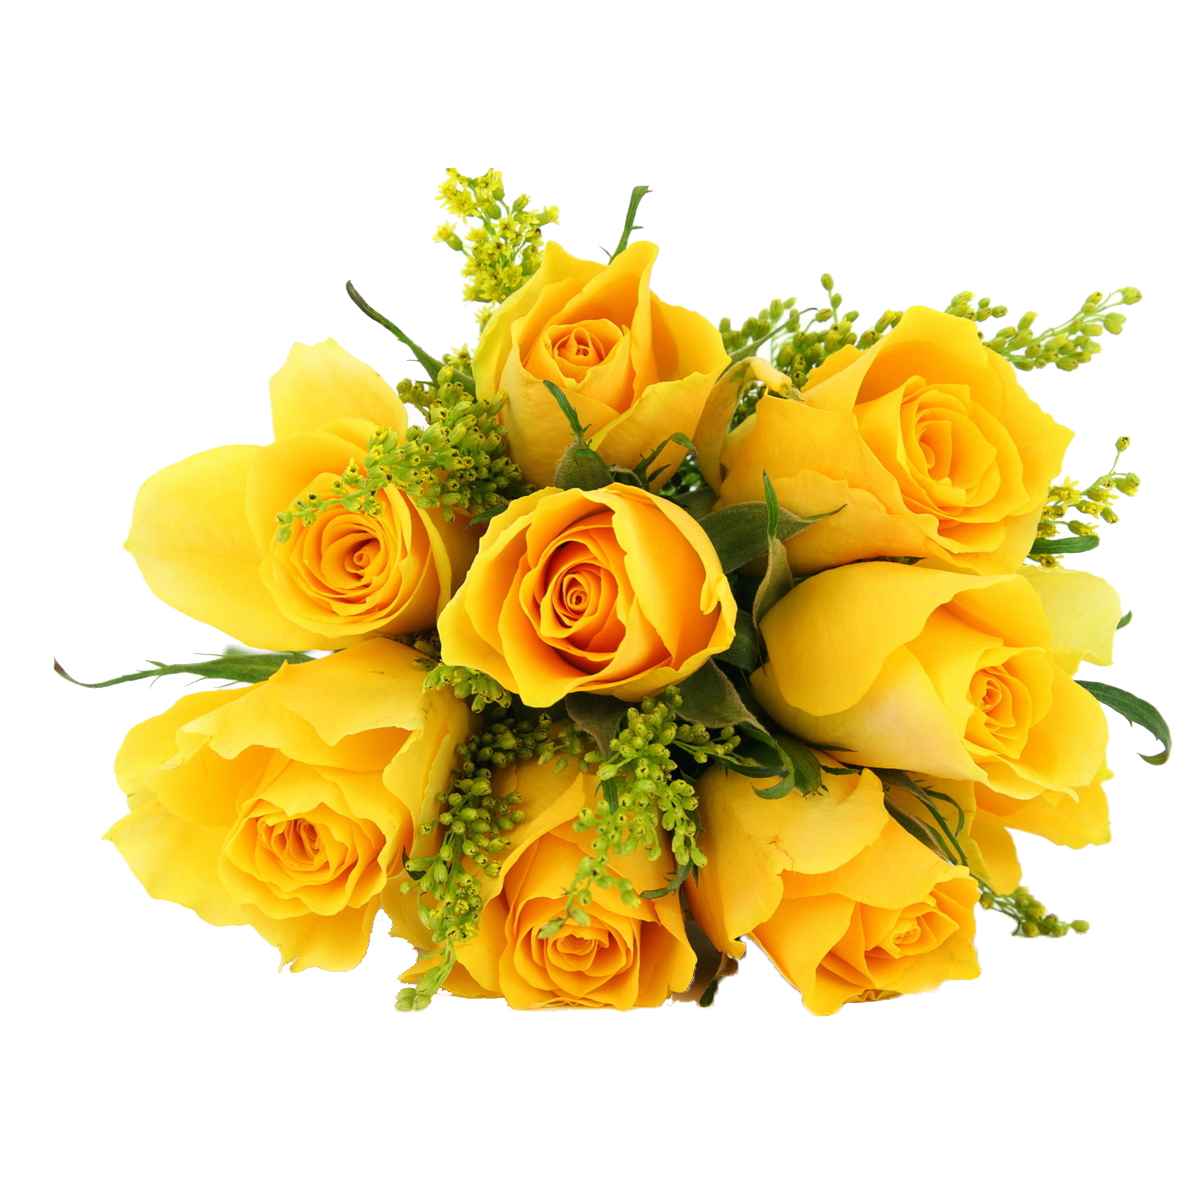 image royalty free library Dozen Yellow Roses Bouquet